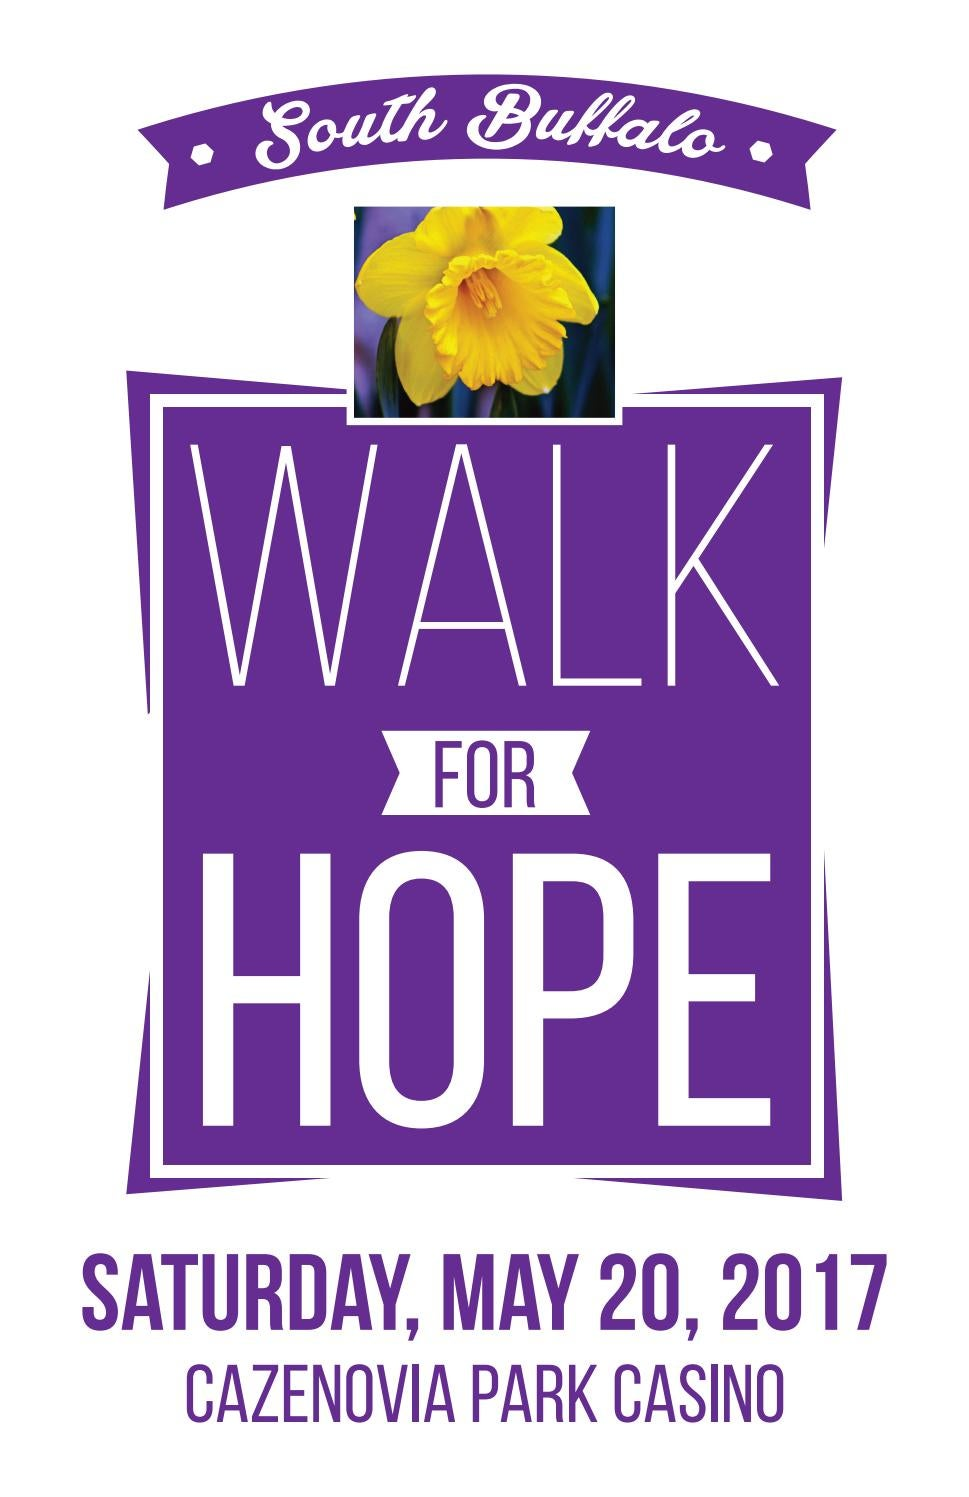 South Buffalo Walk For Hope 2017 By SB Marketing LLC